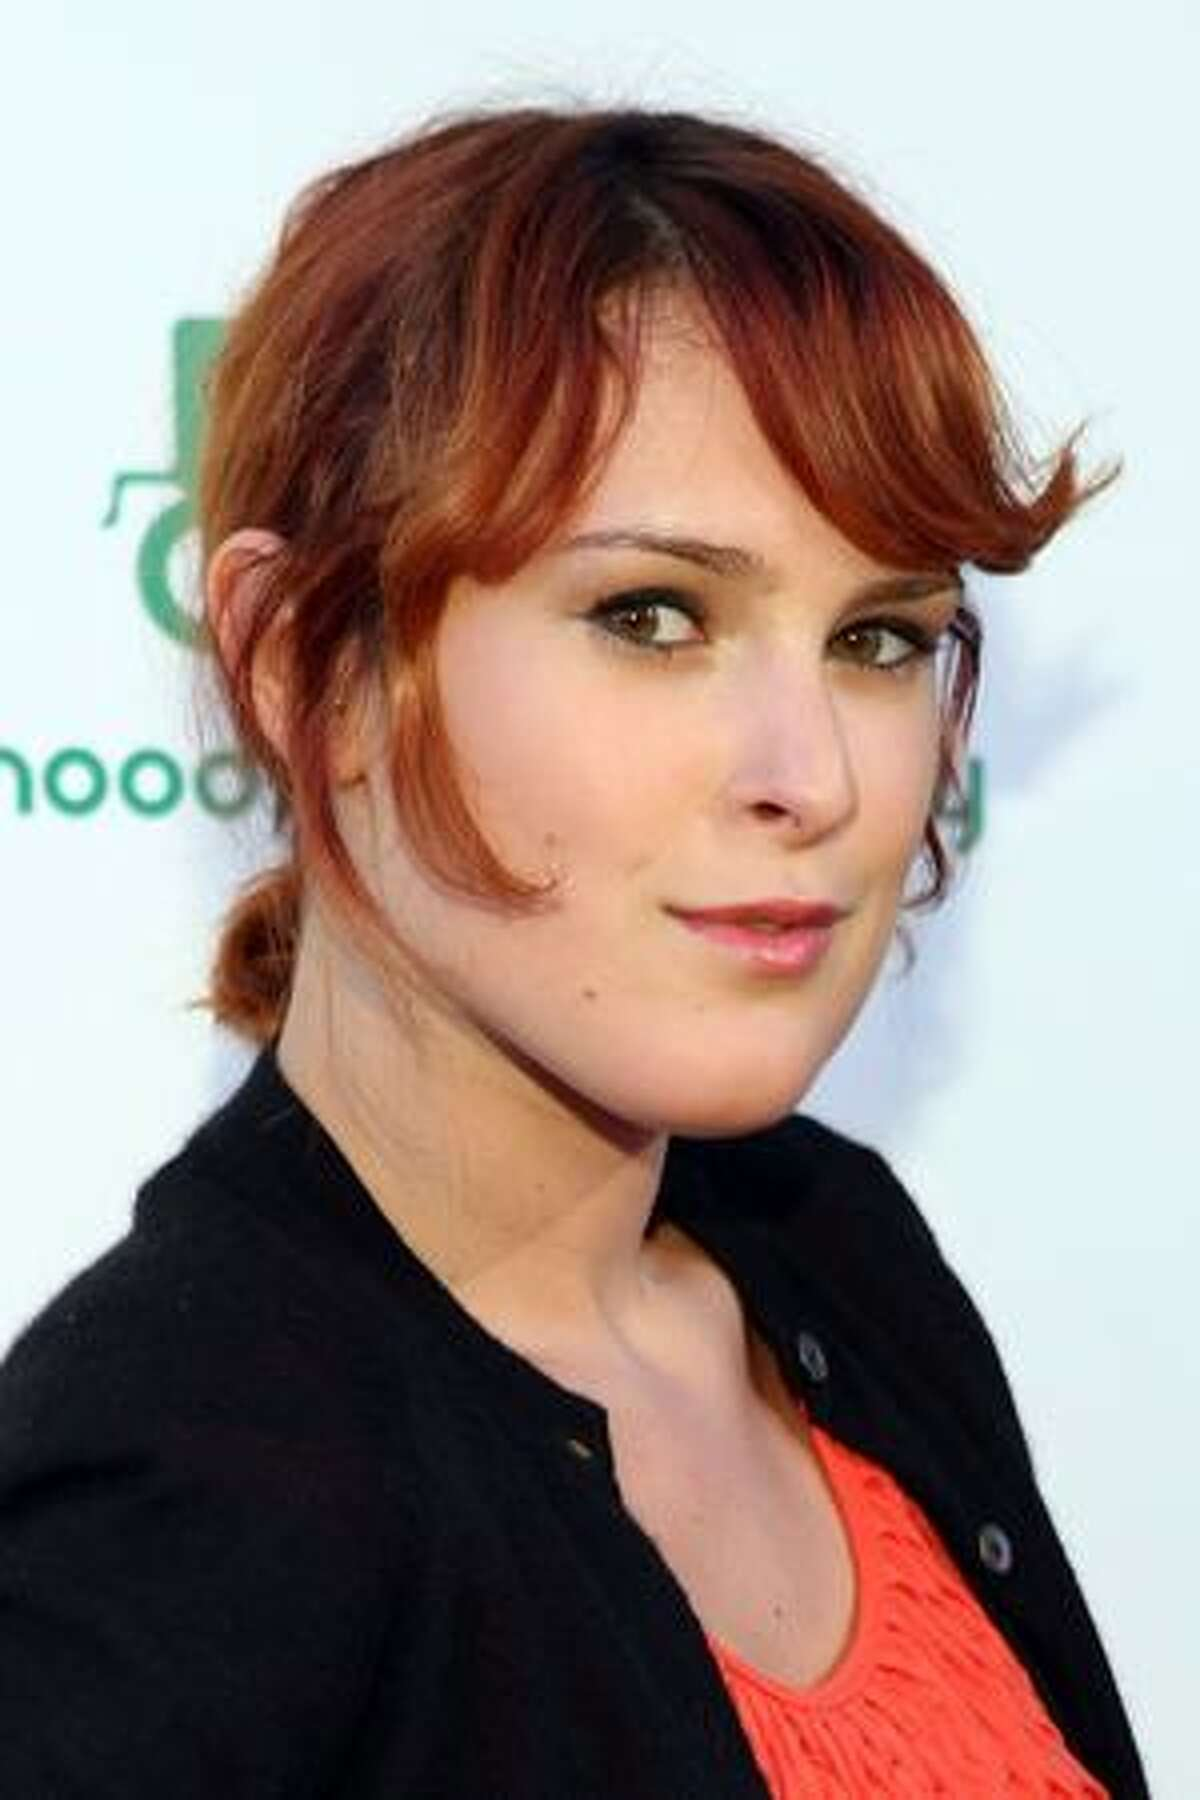 Rumer Willis attends the Moods of Norway flagship store launch at the Robertson Boulevard store location in Beverly Hills, Calif., on Wednesday, July 8, 2009. Moods of Norway is a clothing store with the motto